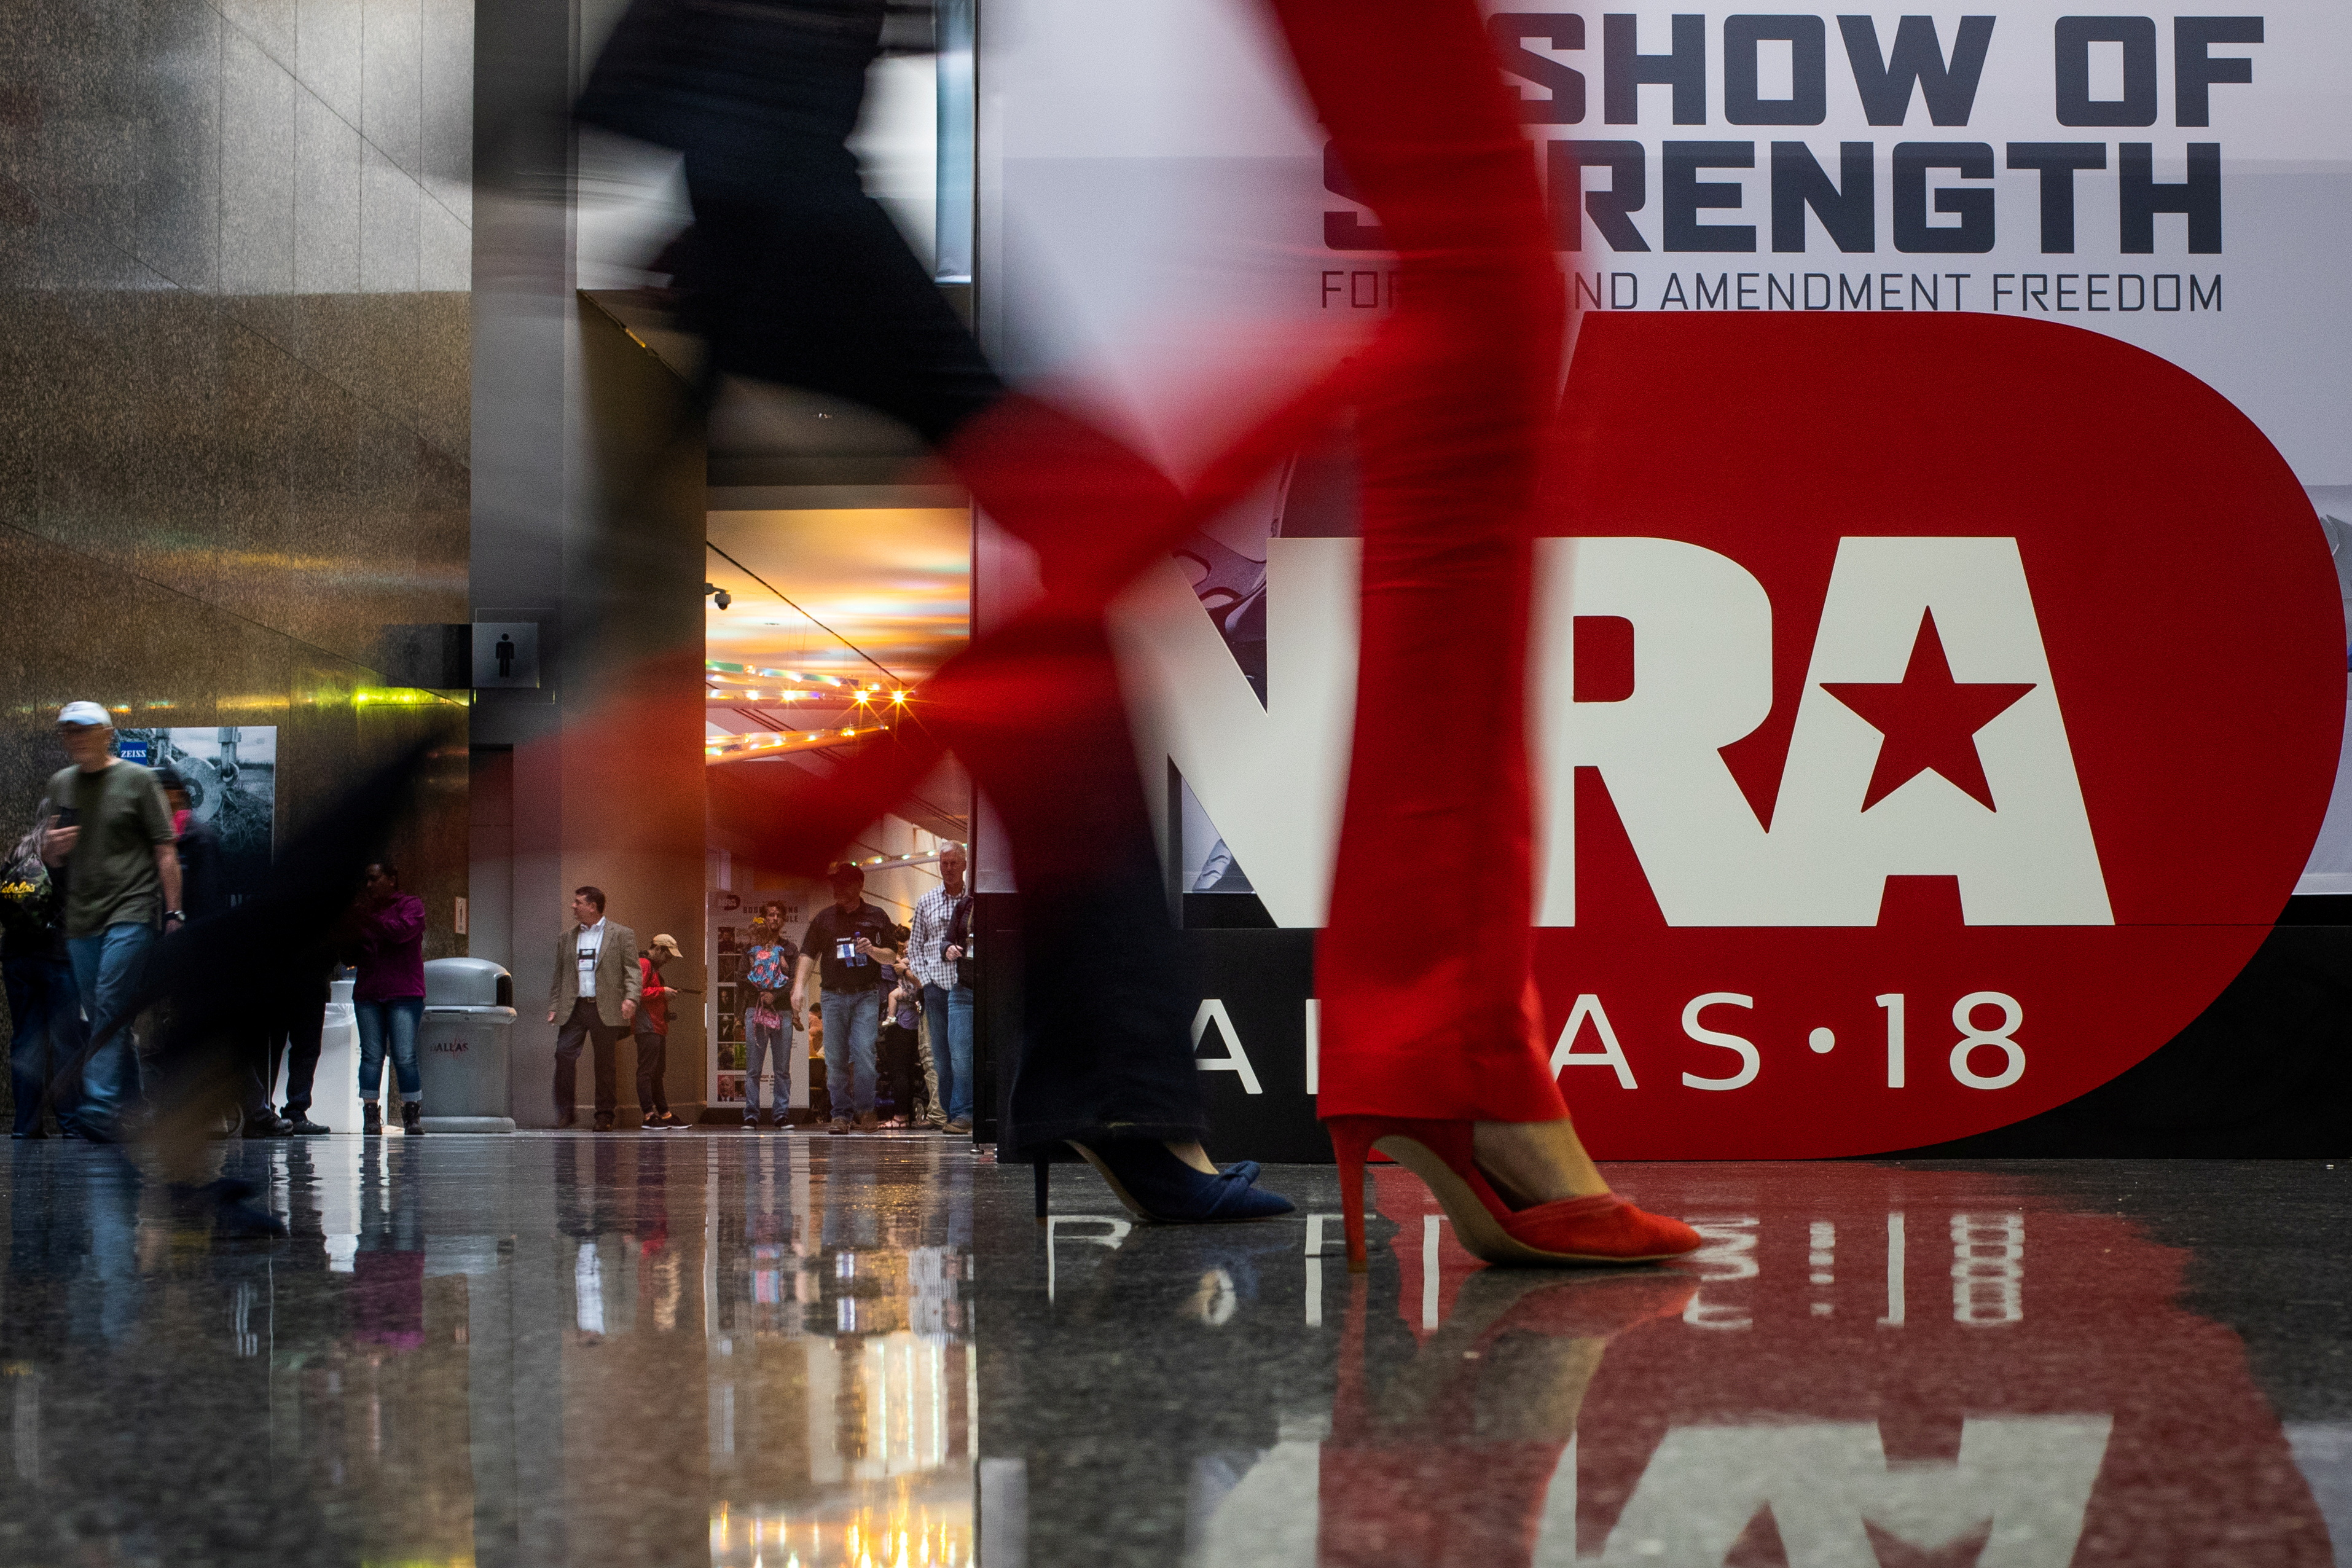 Attendees walk past a sign at the annual National Rifle Association (NRA) meeting in Dallas, Texas, U.S., May 4, 2018. REUTERS/Adrees Latif